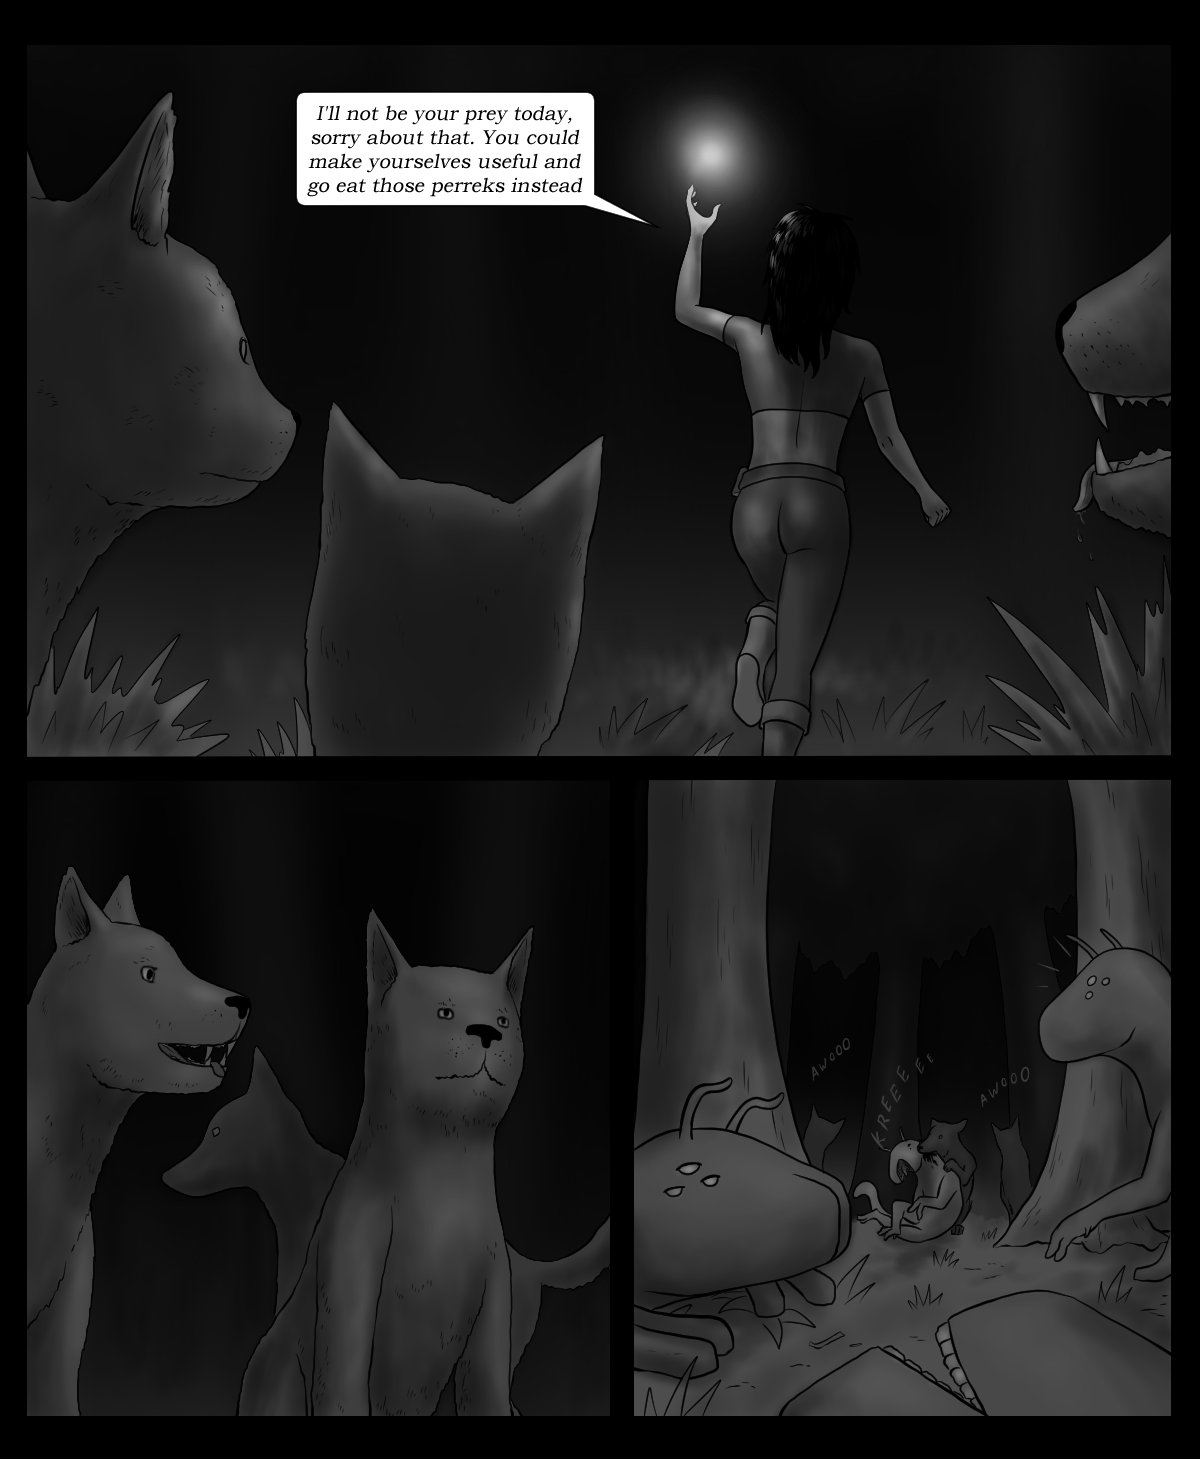 Page 49 - An advice from a prey